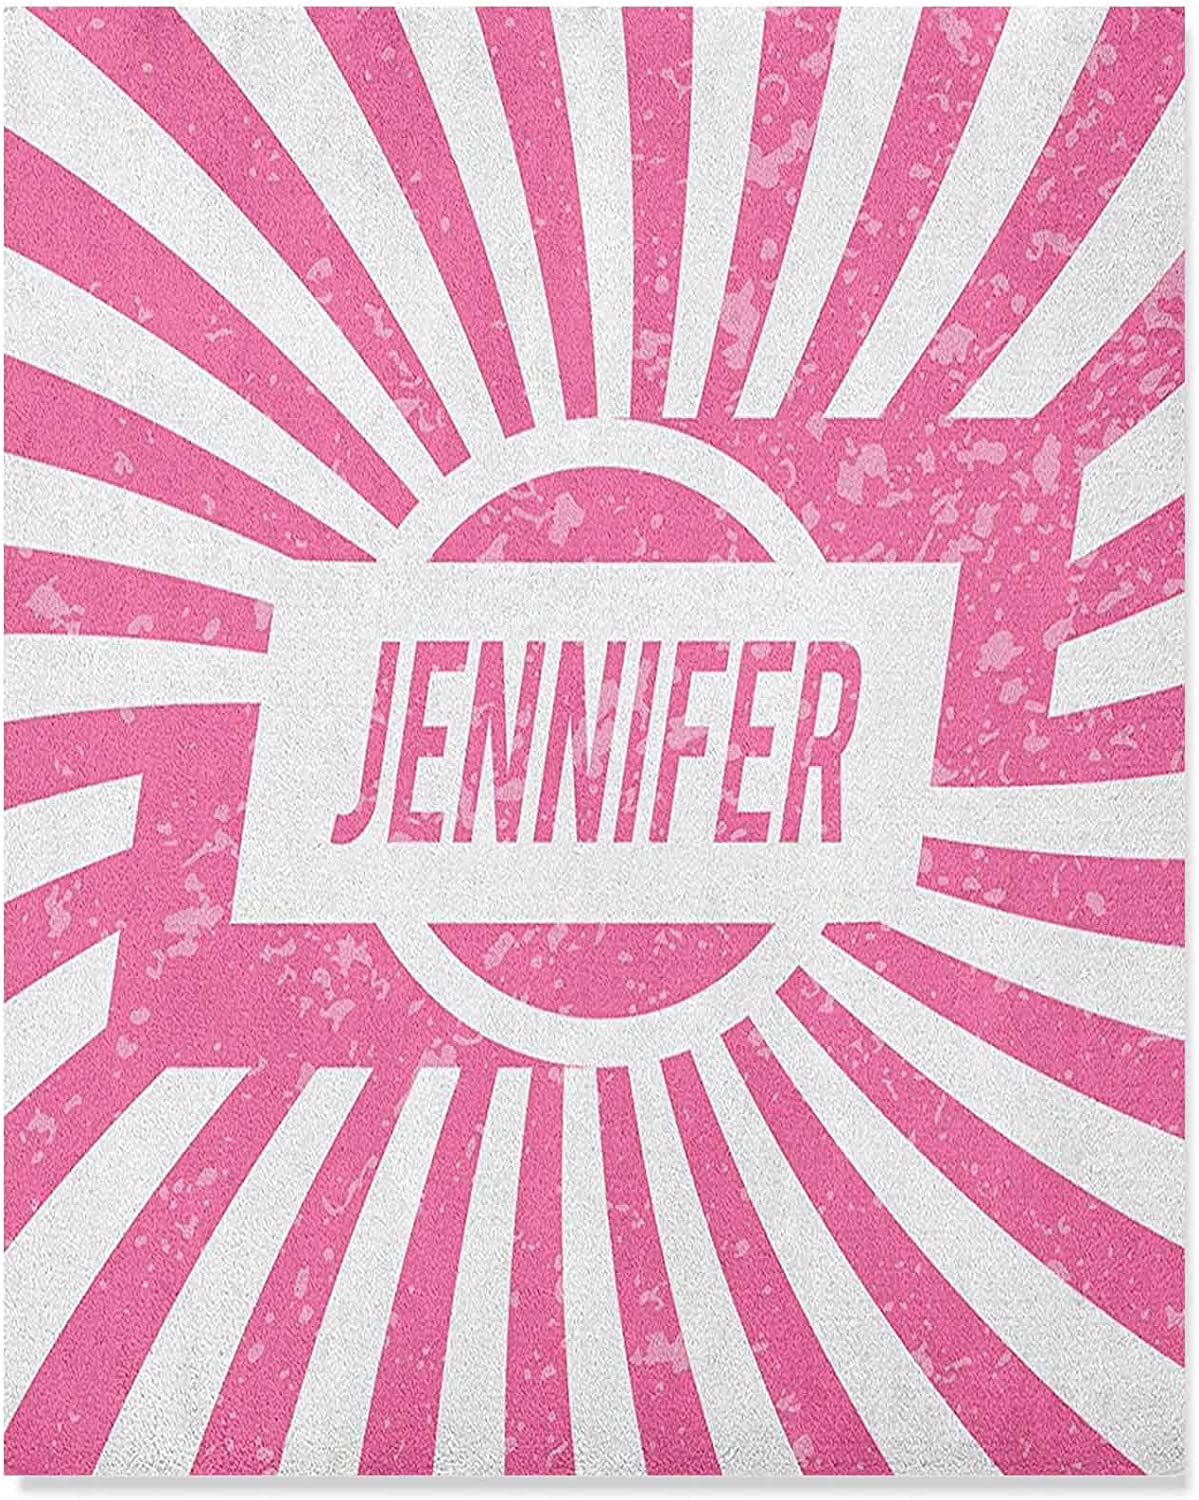 Jennifer Wall Pictures One of The Most Popular Names for Newborn American Girls in Retro Design 16x20 Inch Bathroom Wall Decor Office Home Decoration